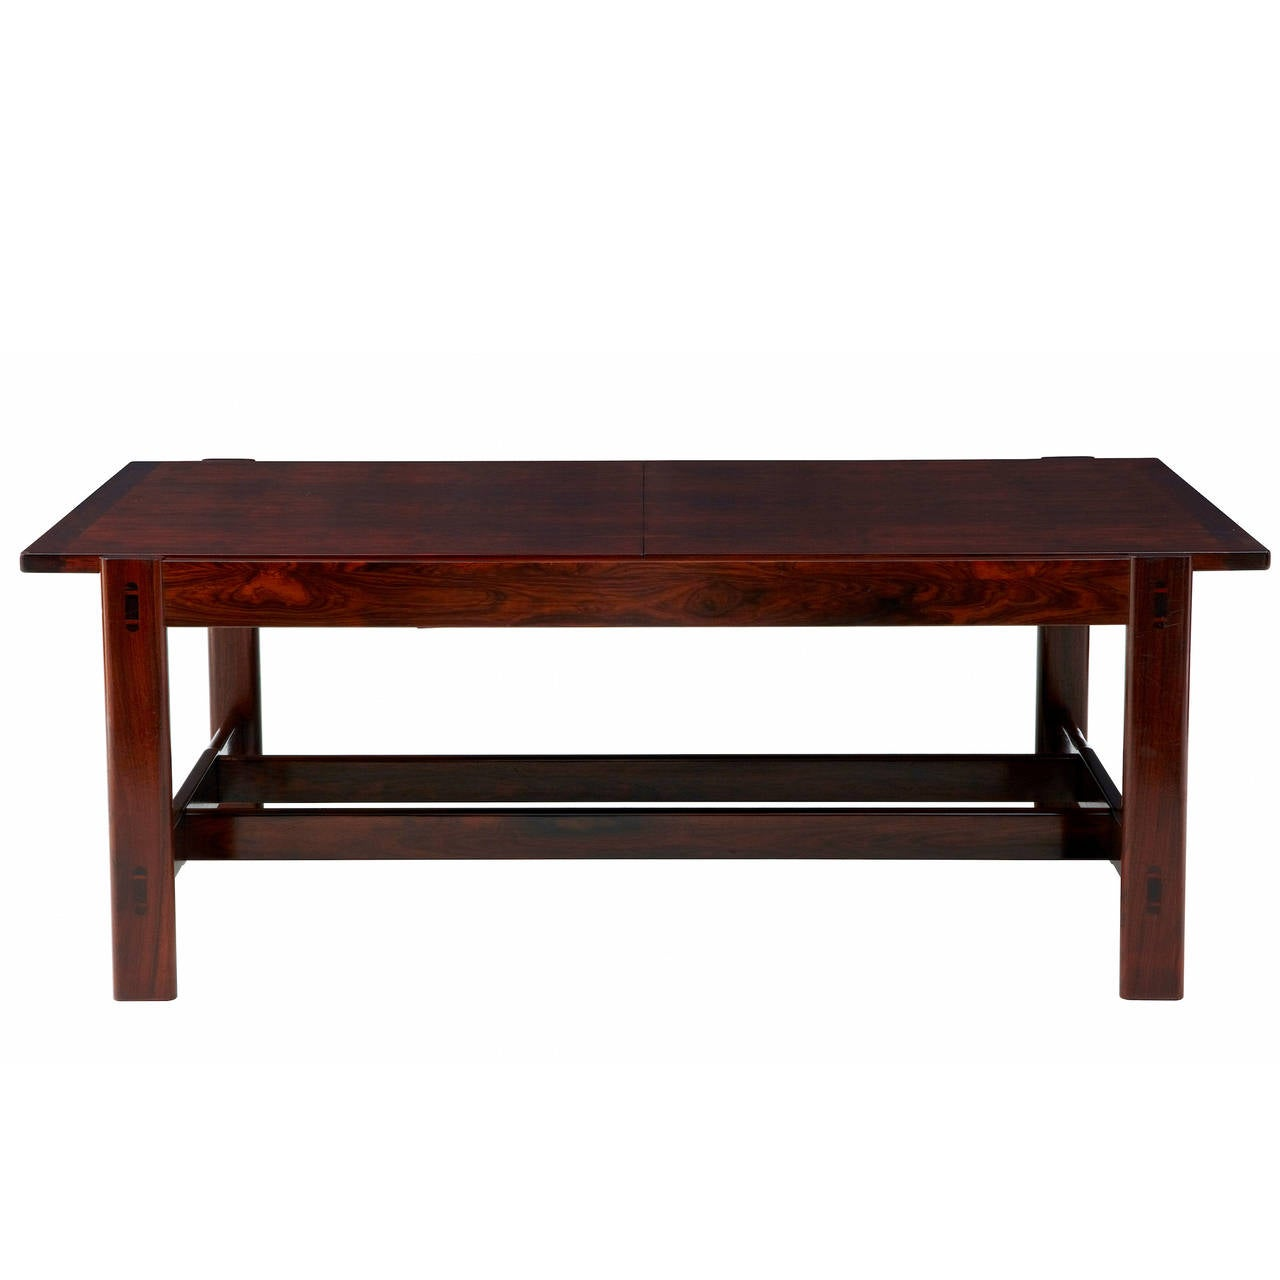 20th Century Danish Rosewood Extending Coffee Table At 1stdibs